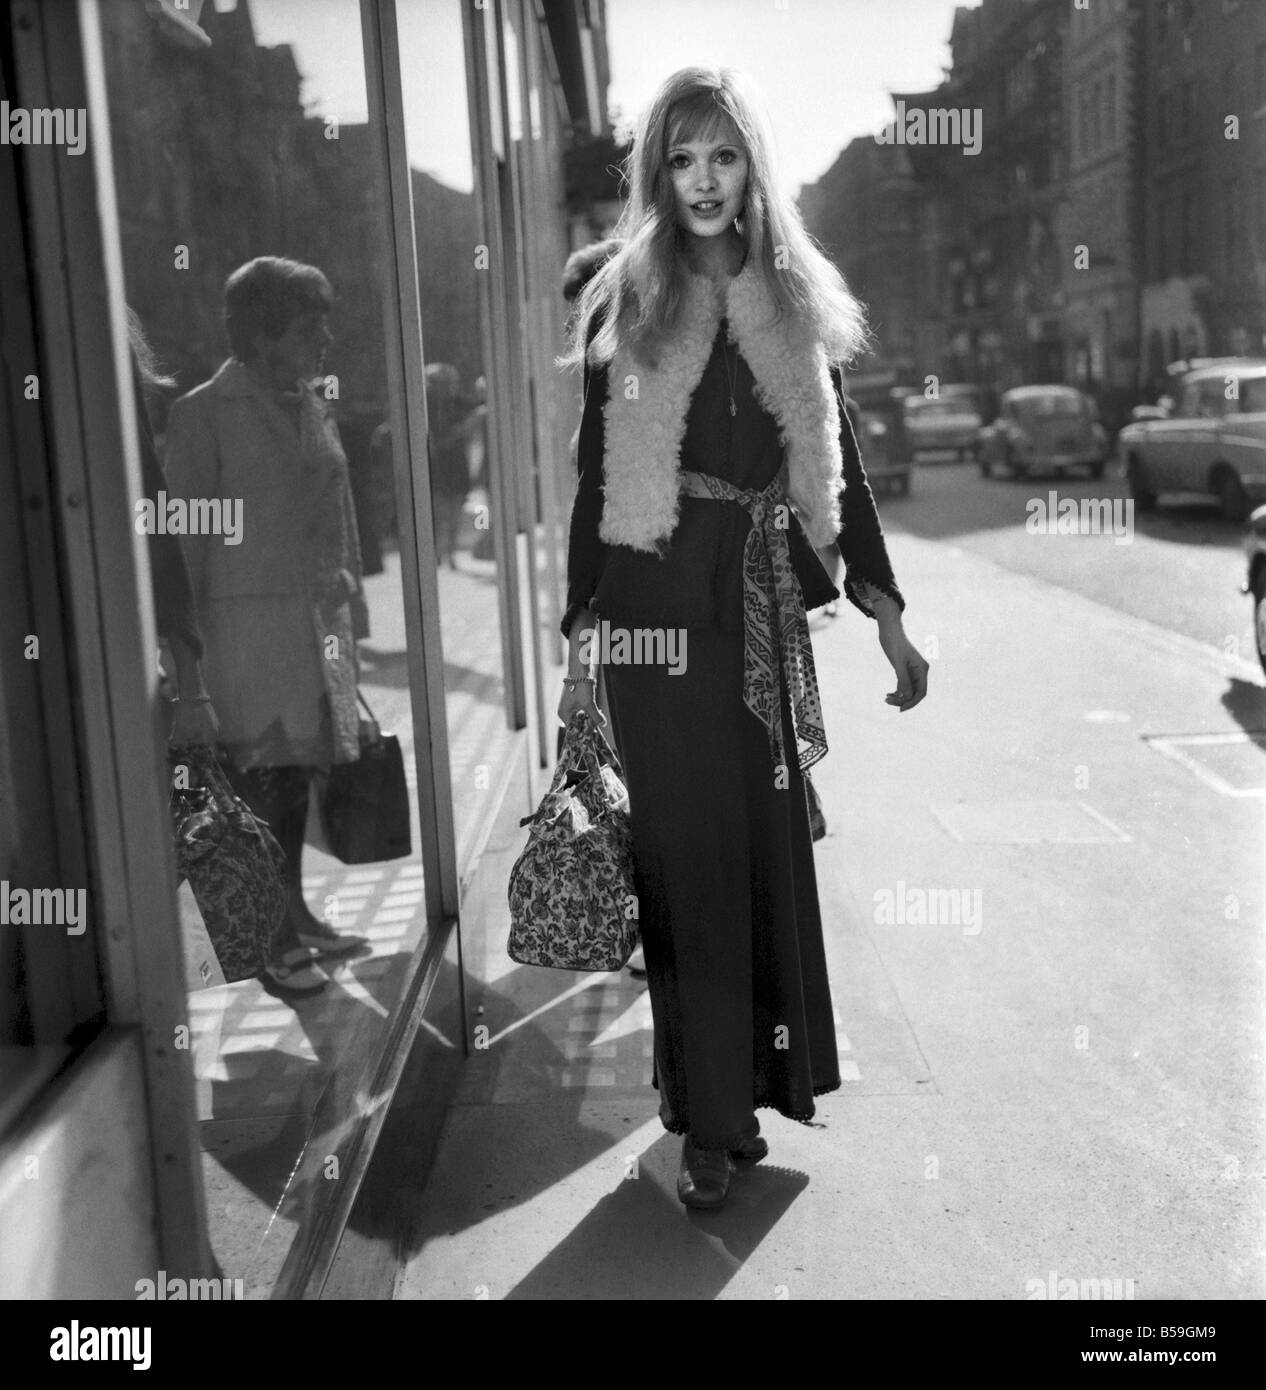 The first cool day and the maxi look seem to be the swinging London look. Actress Maddy Smith seen in Bond Street - Stock Image